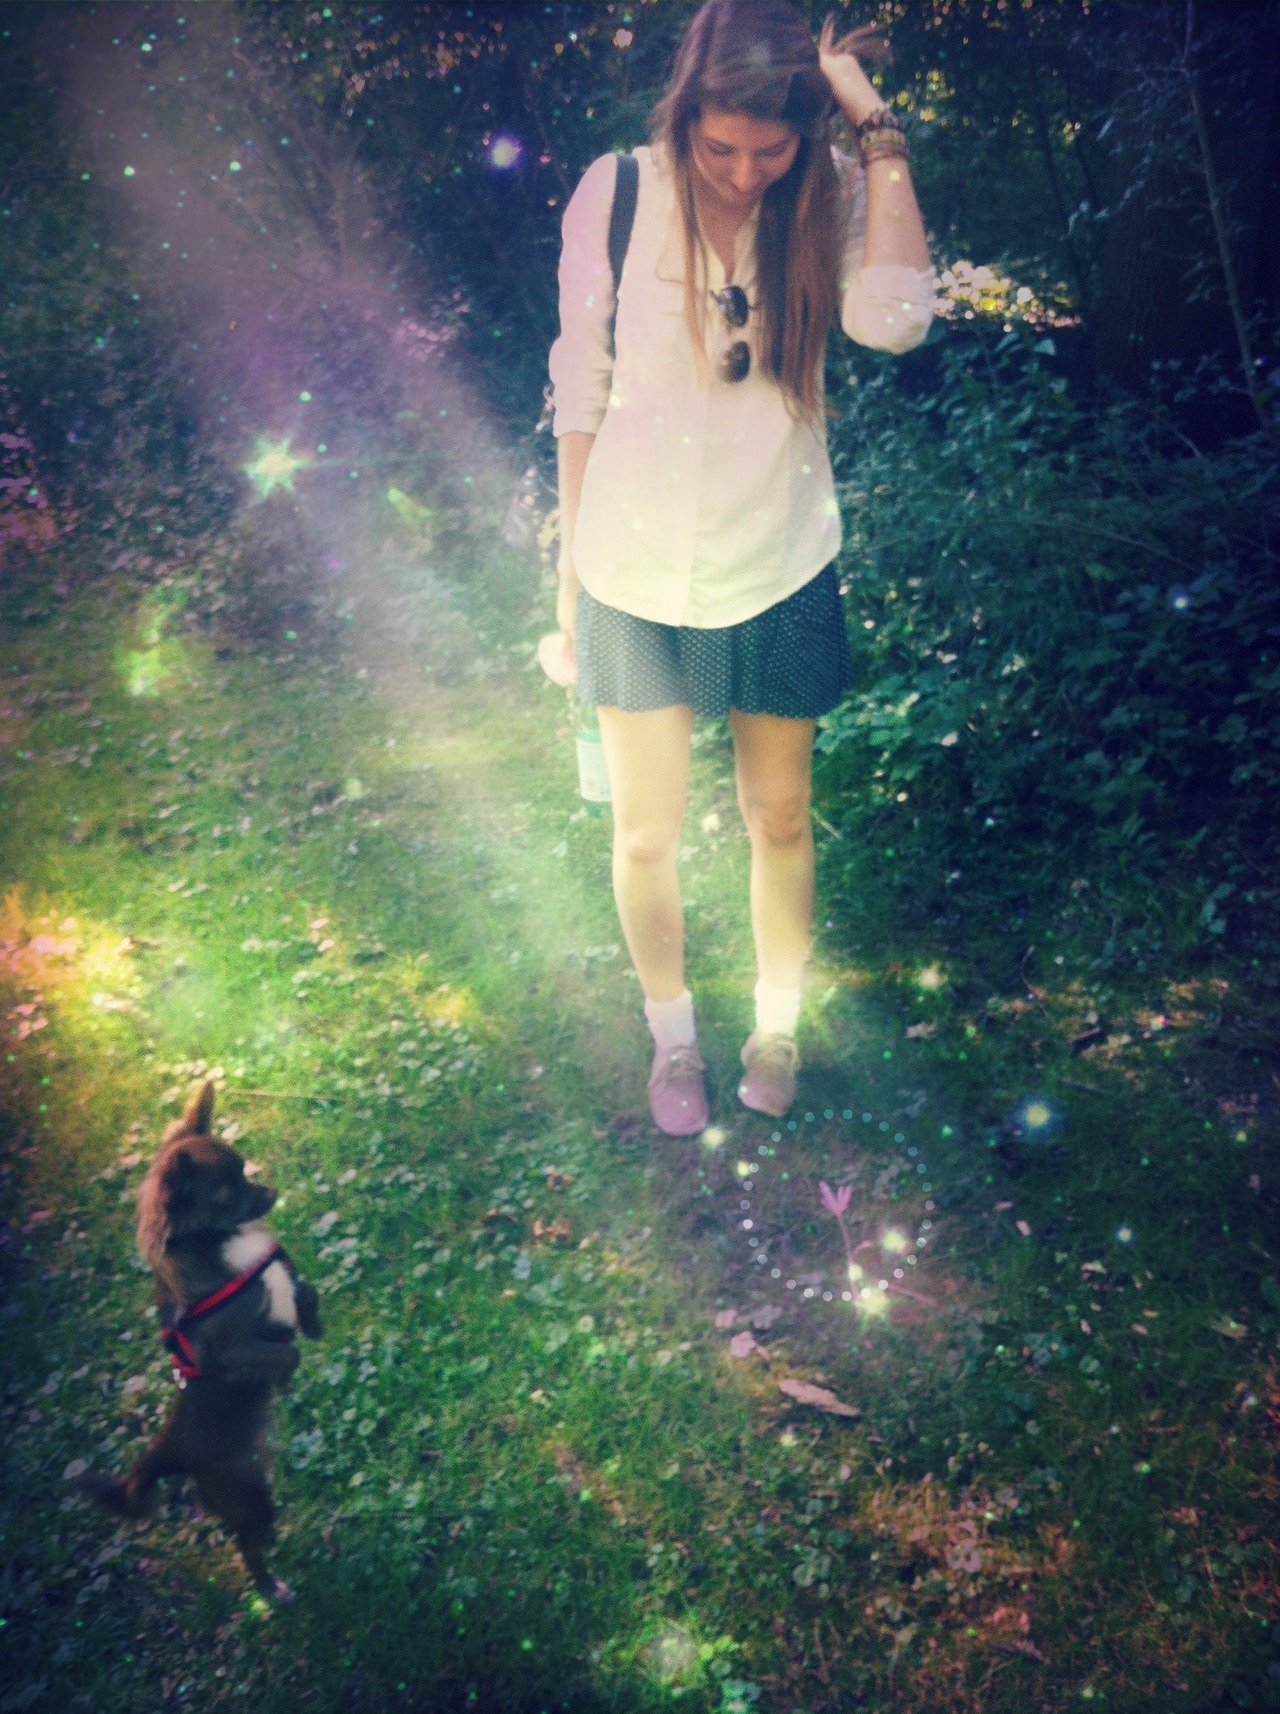 Today, we found a magical flower. ö__ö